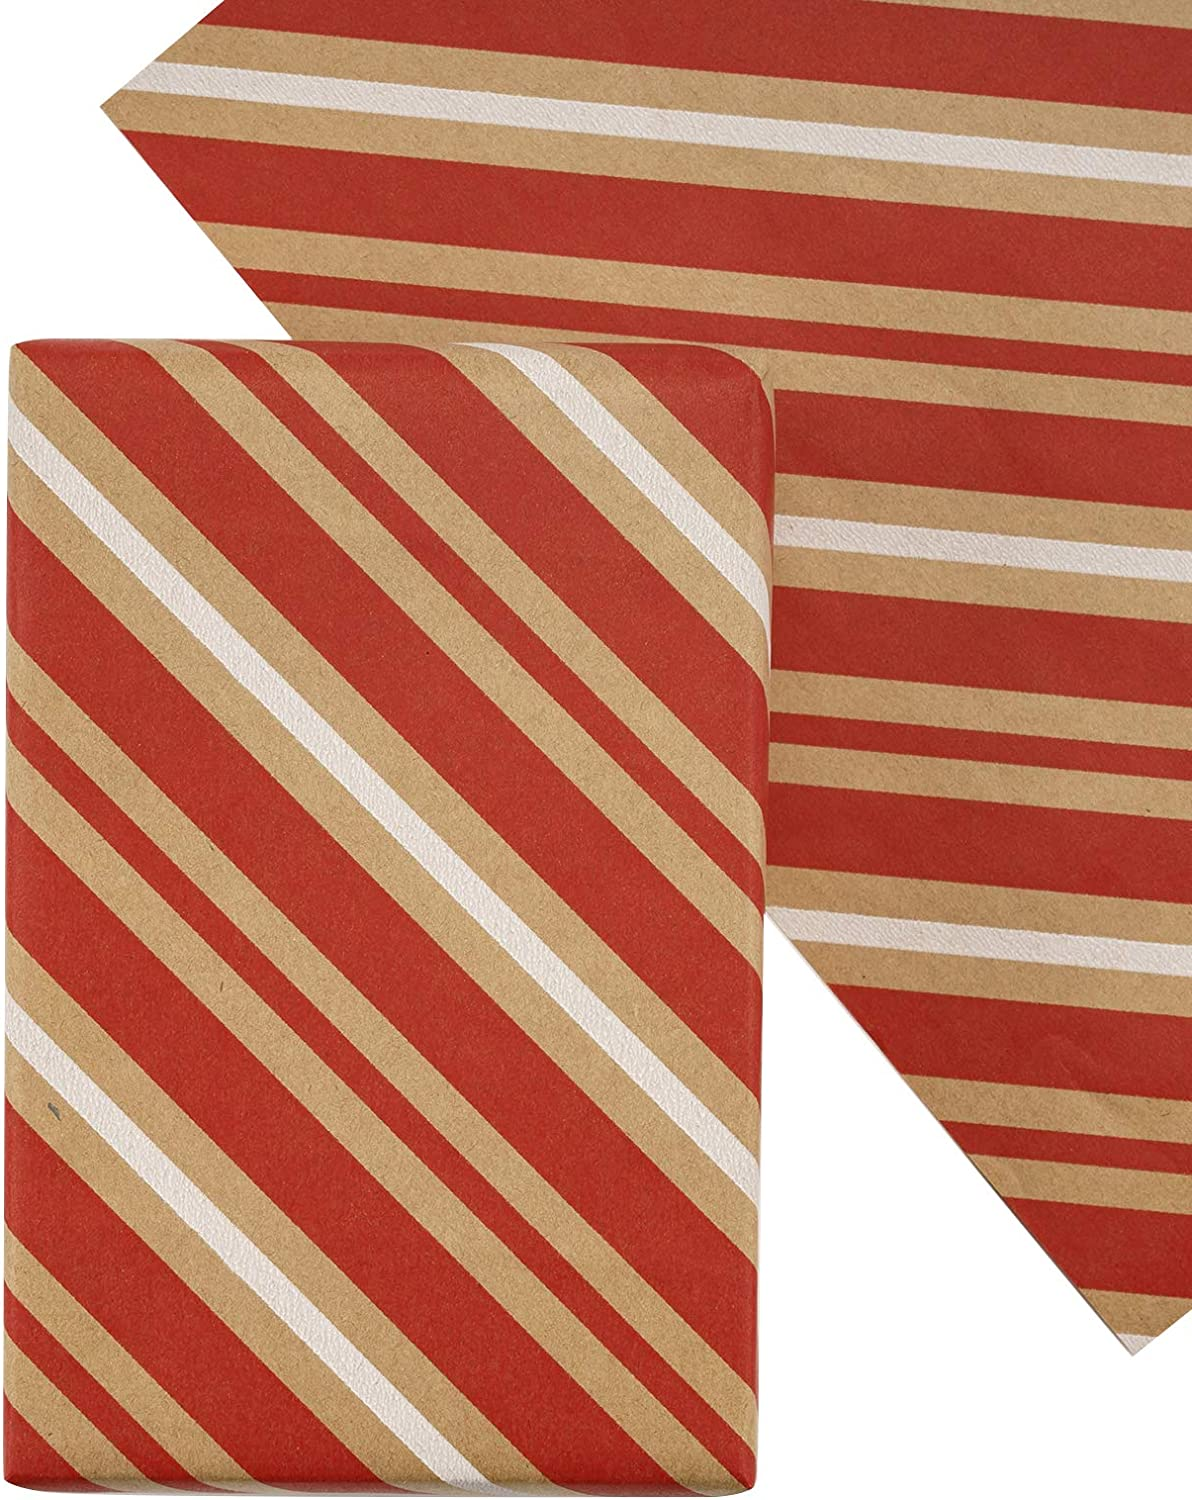 RUSPEPA Christmas Wrapping Paper Sheet, Folded Flat, Not Rolled, Holiday Wrap - 30 Inches x 10 Feet, Stripes Red